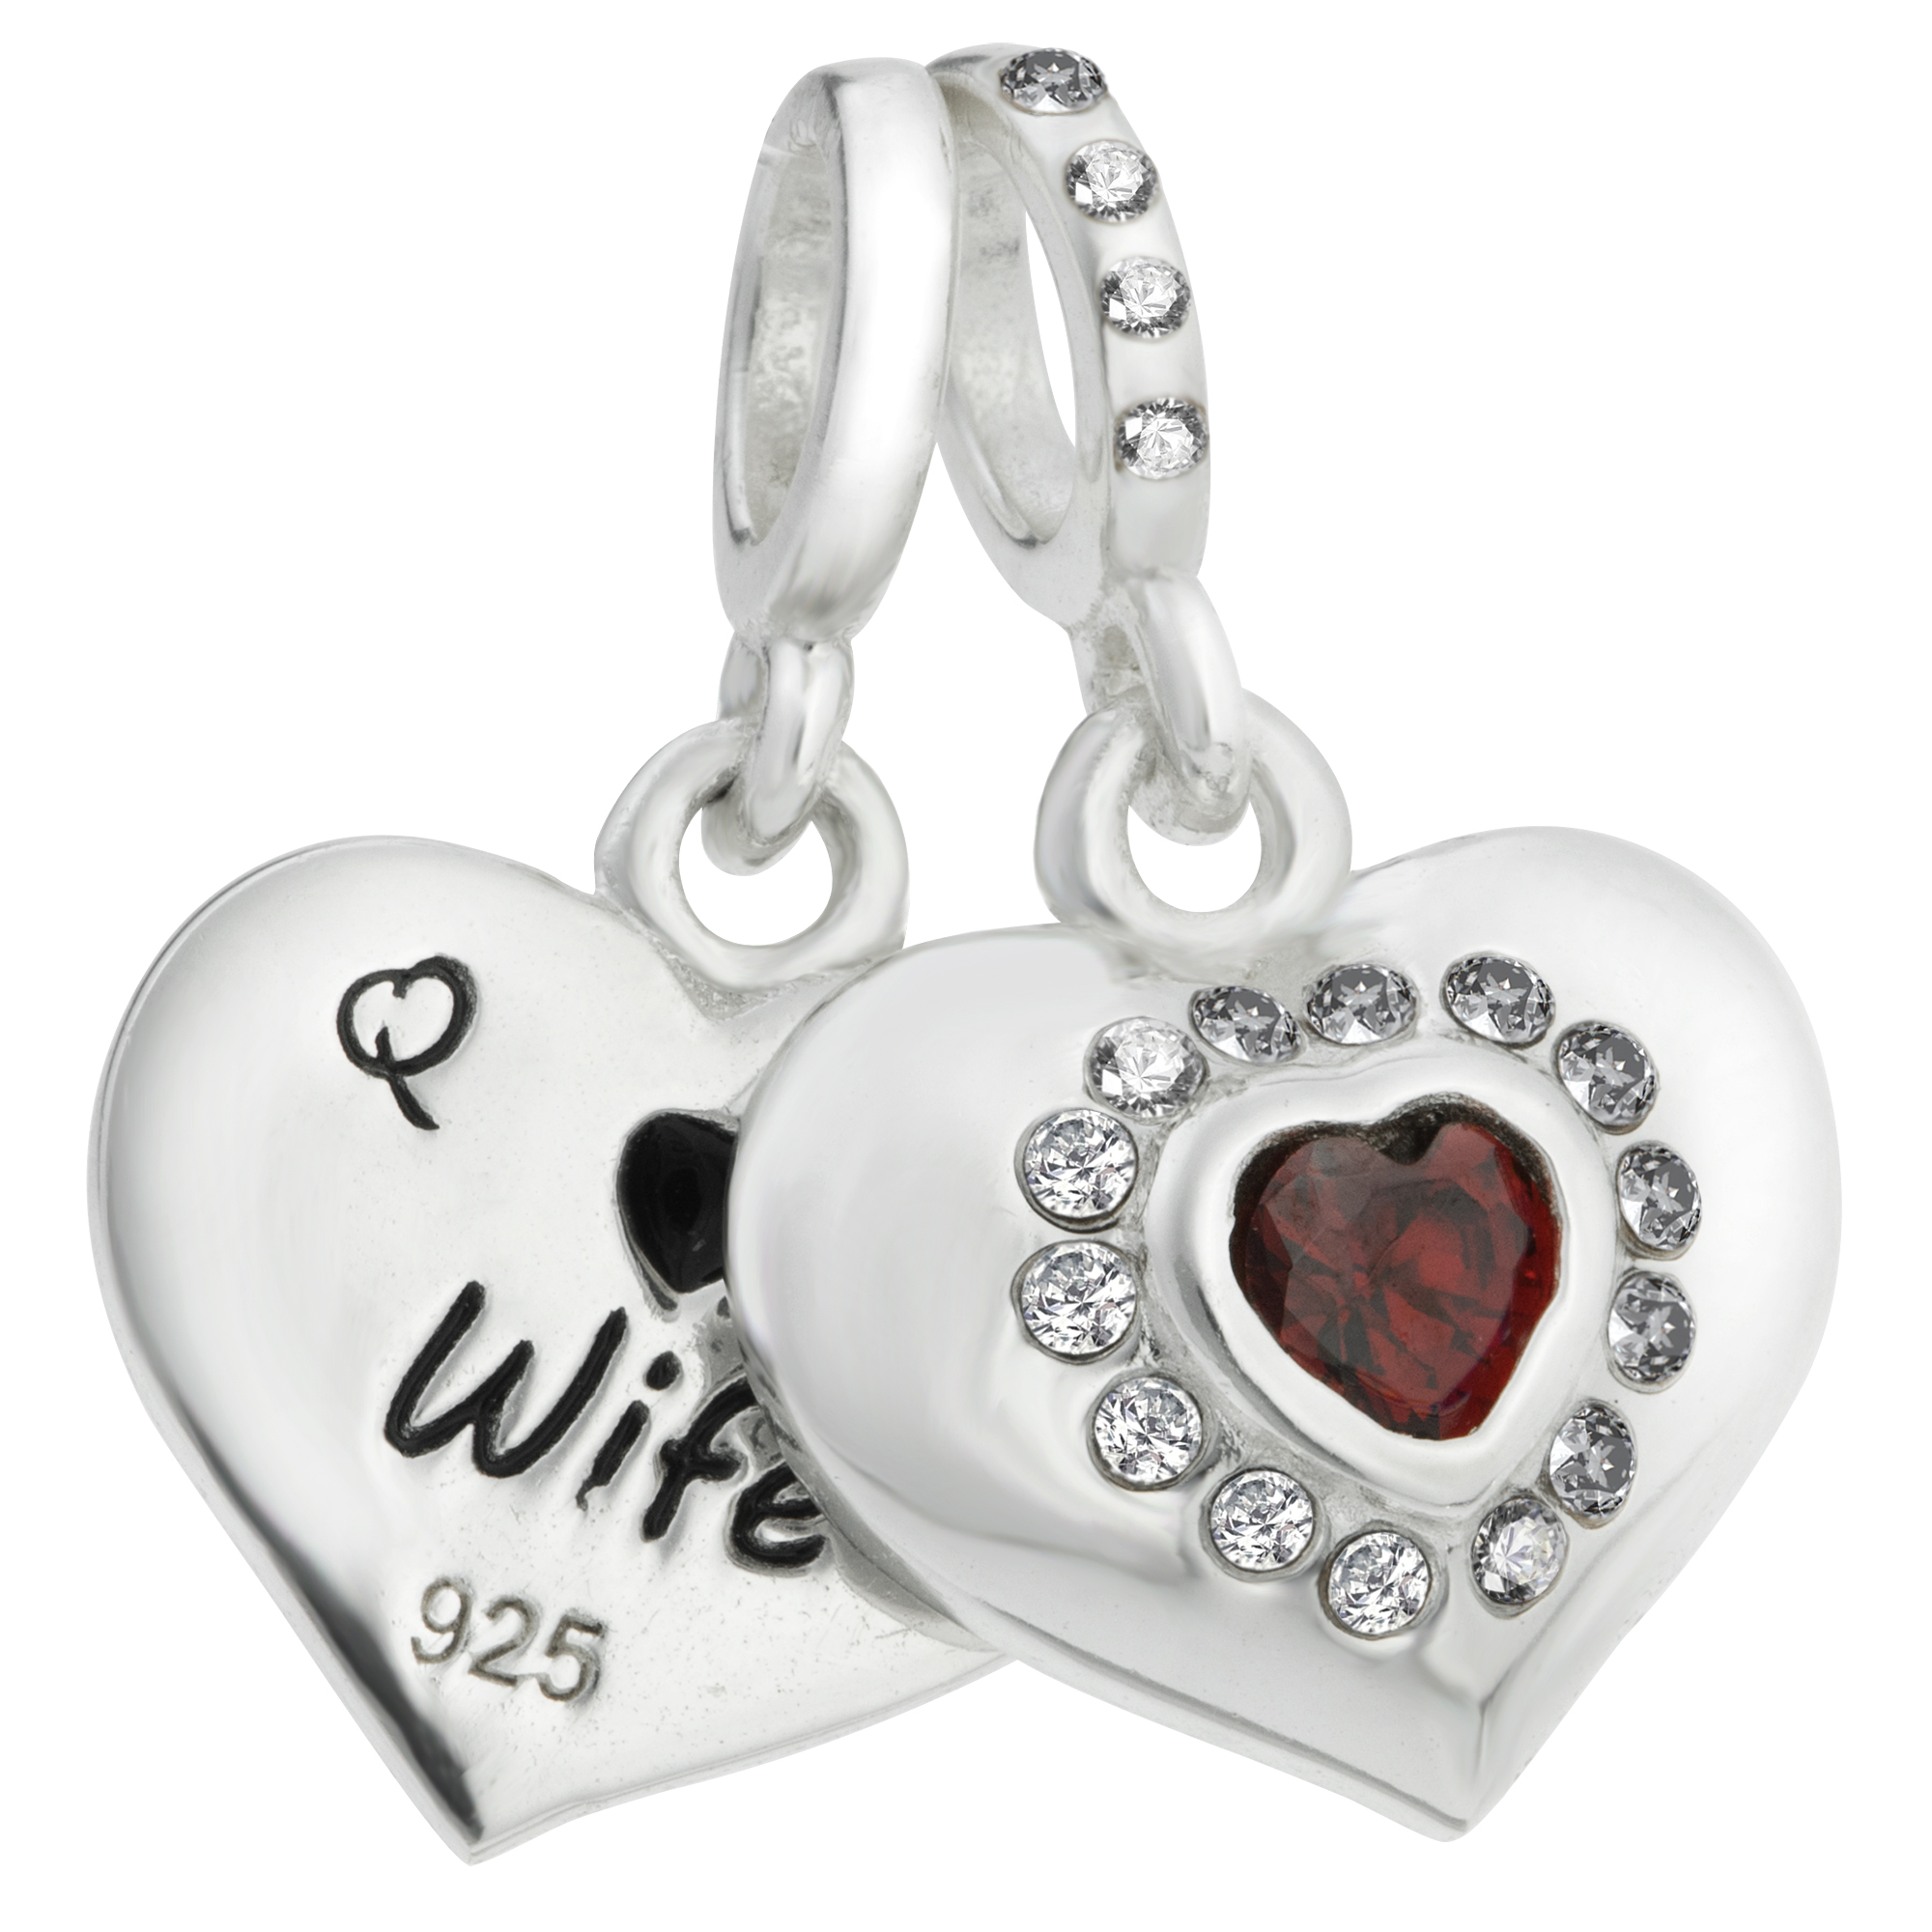 1x 925 Sterling Silver Husband & Wife Love Heart Red CZ Dangle Bead for European Charm Bracelets